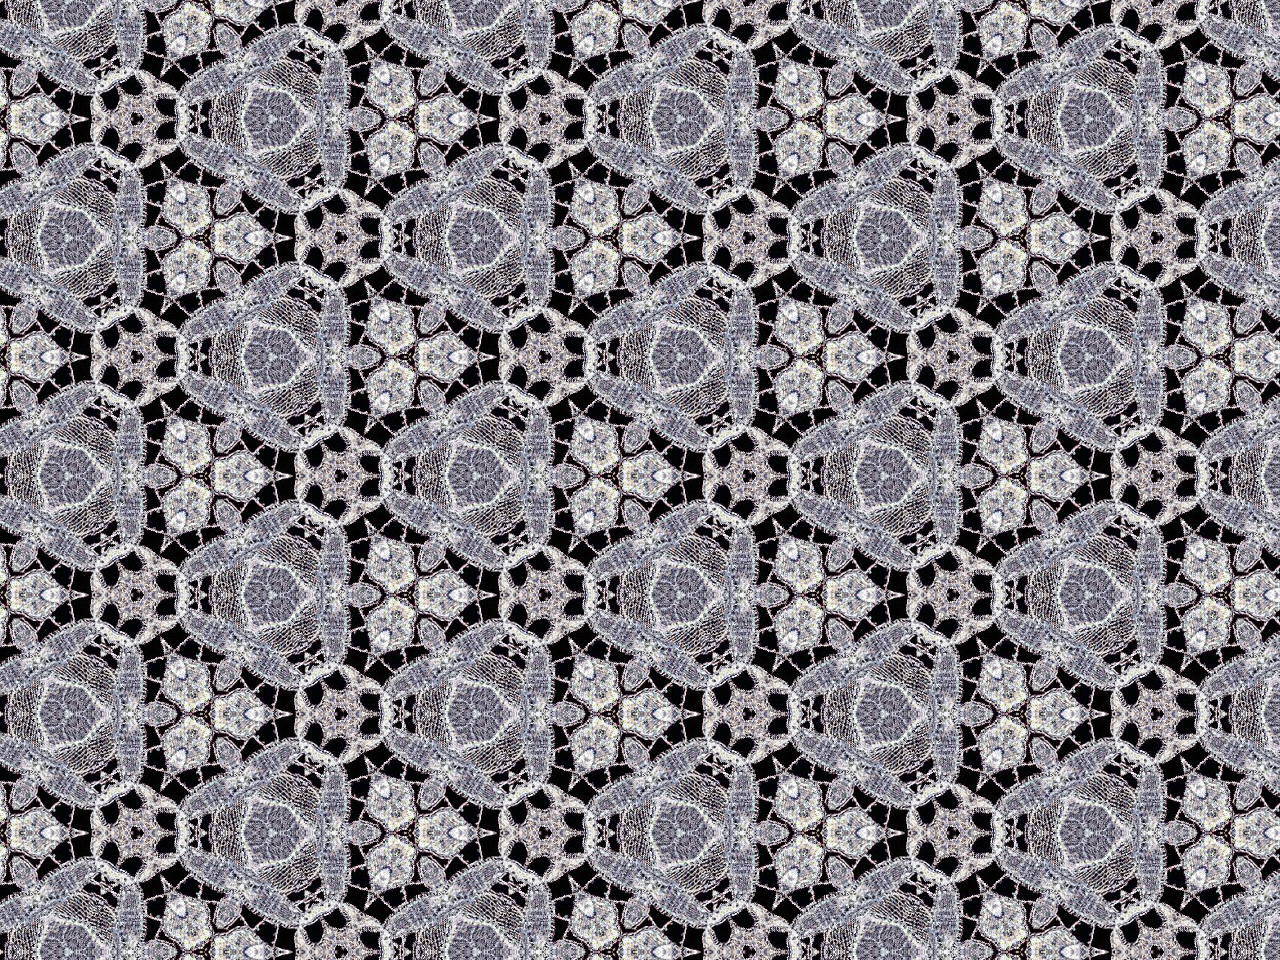 ArtbyJean - Images of Lace: WHITE LACE THREADS OVER BLACK ...